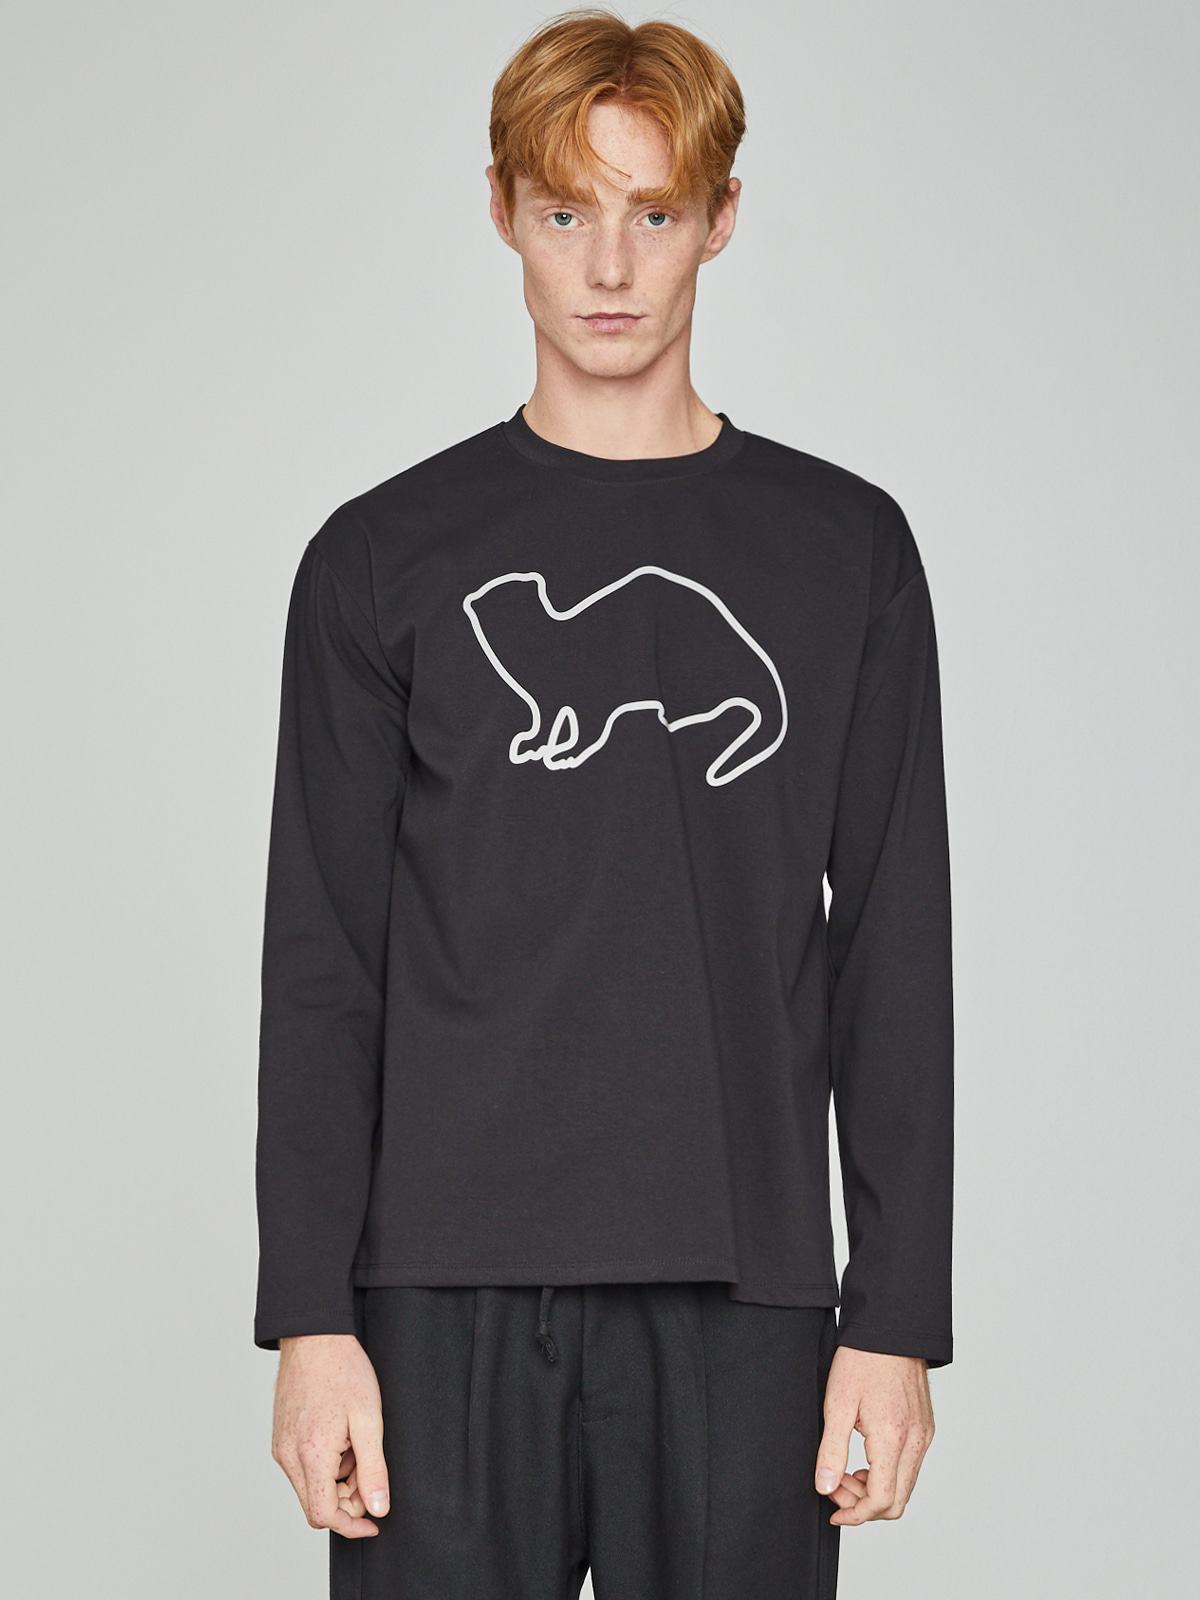 Lazyotter Drawing Long Sleeve_Black